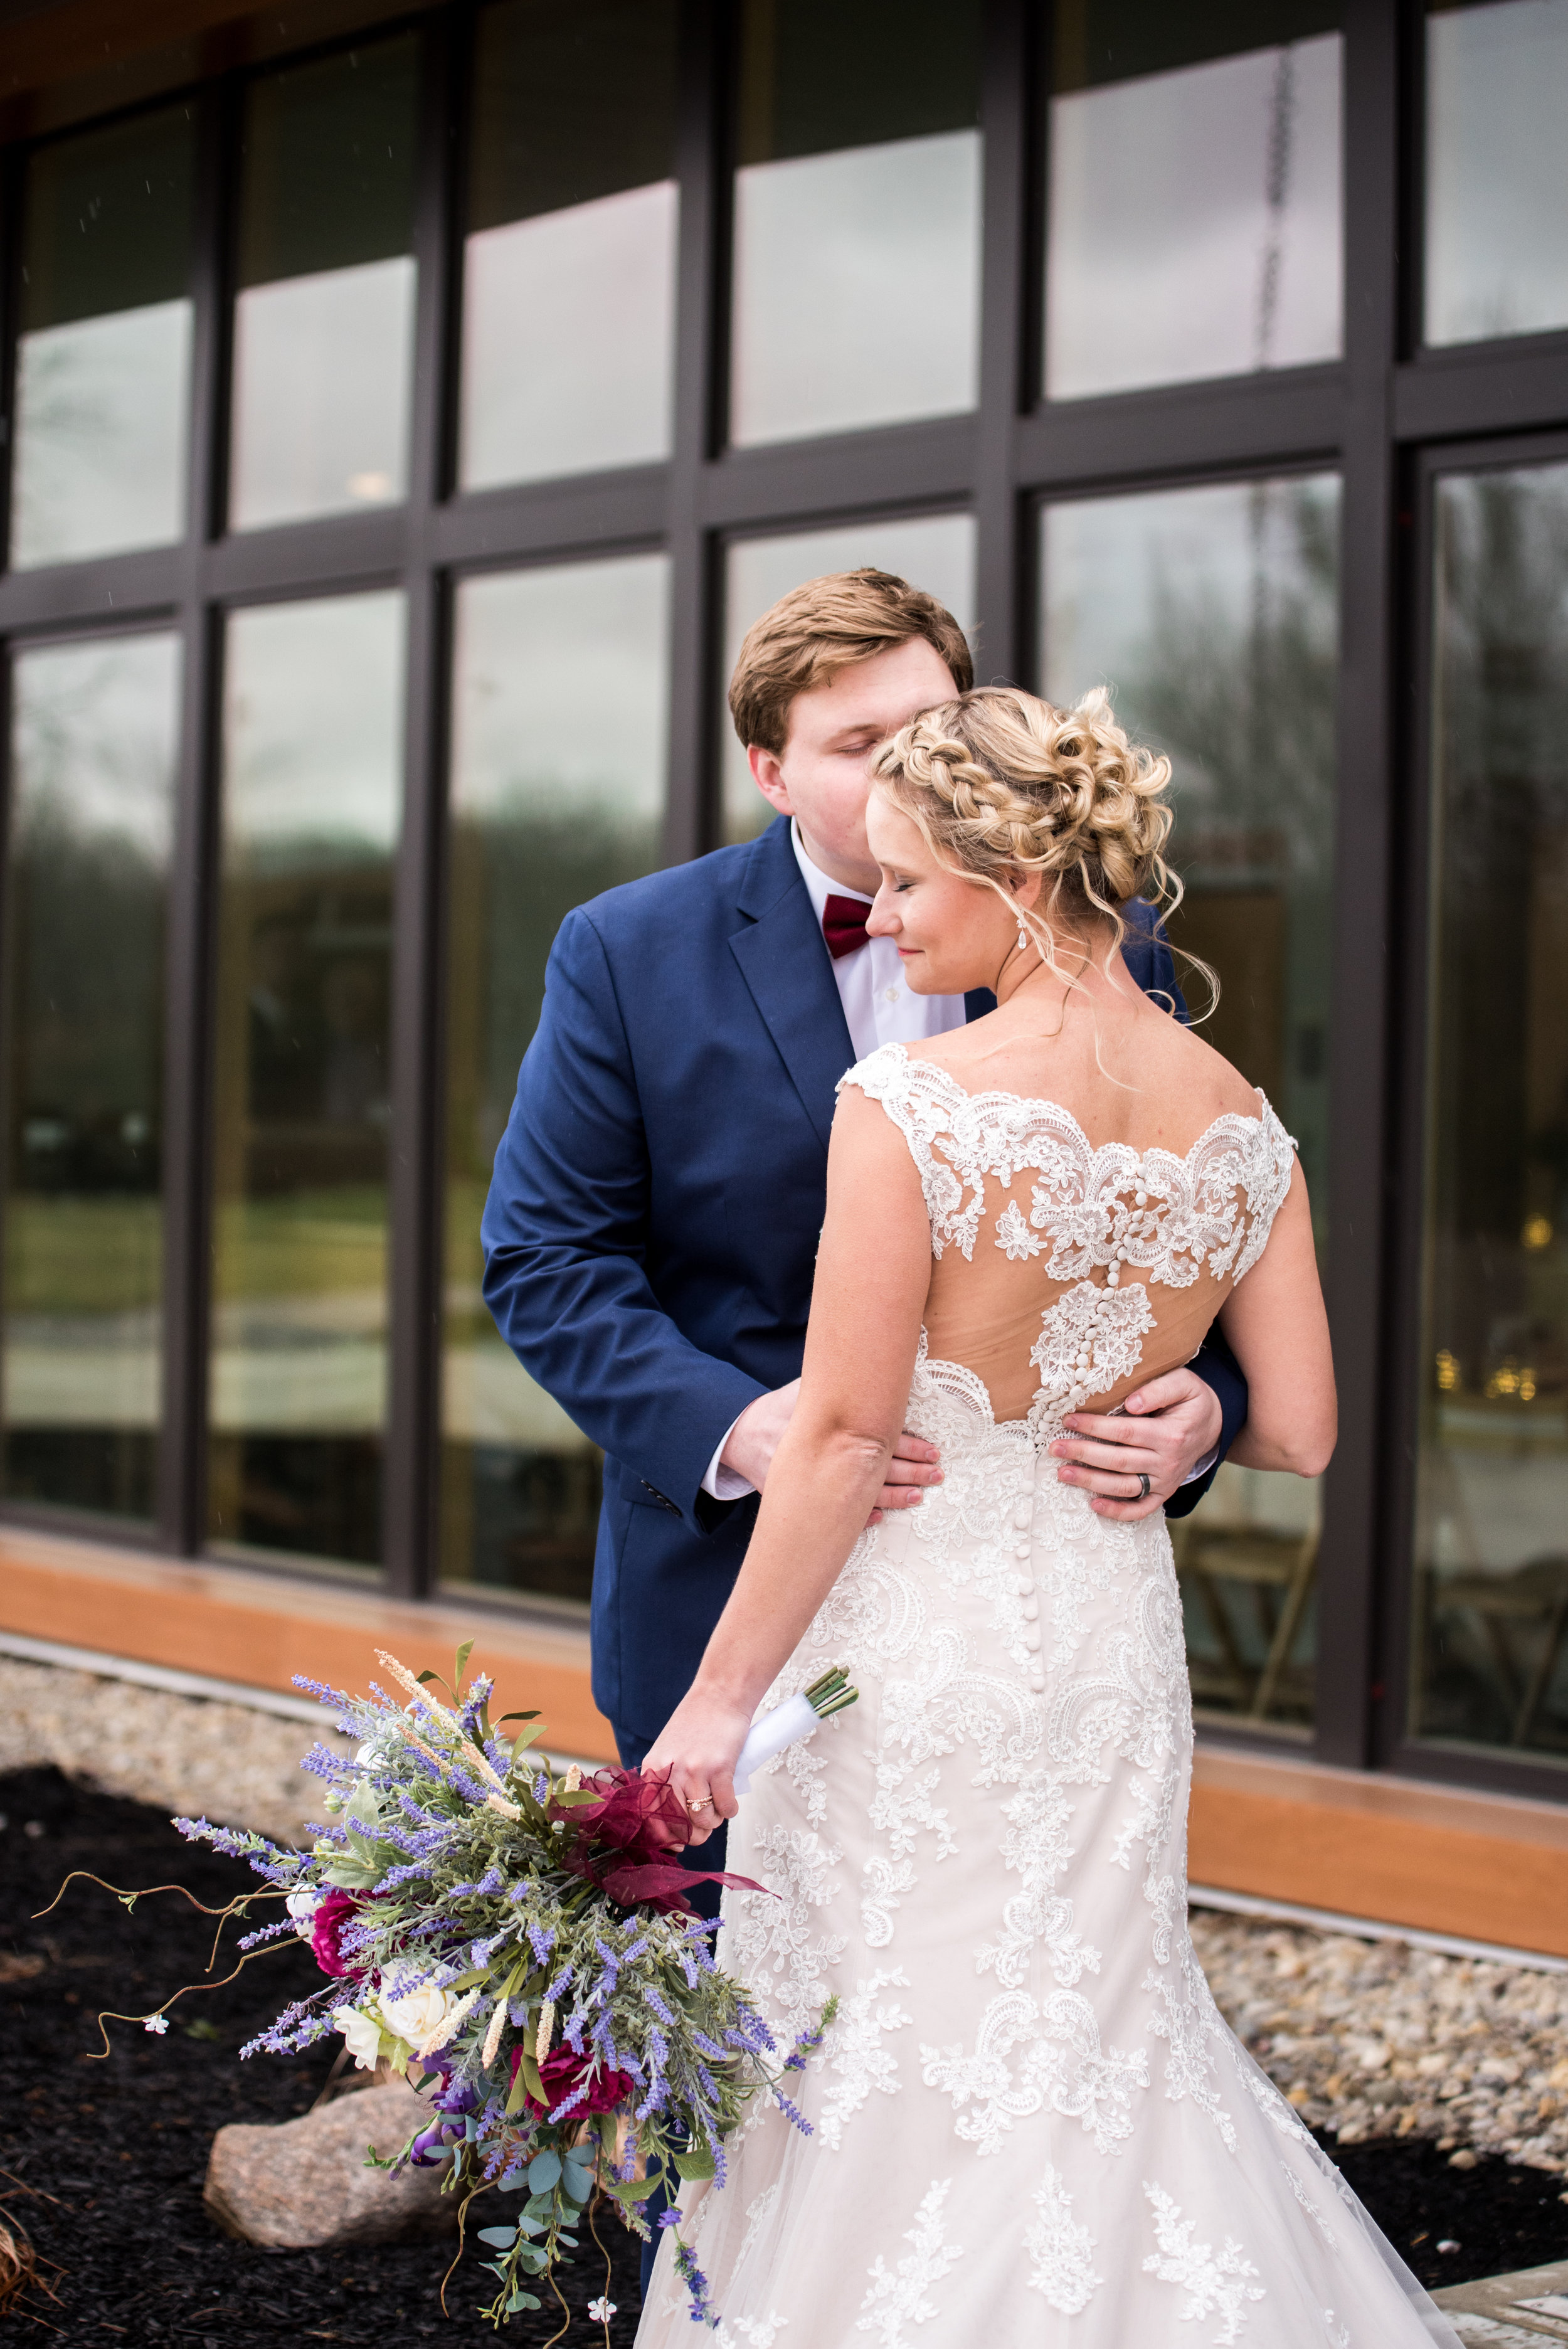 leah and devin (1 of 1)-3.jpg